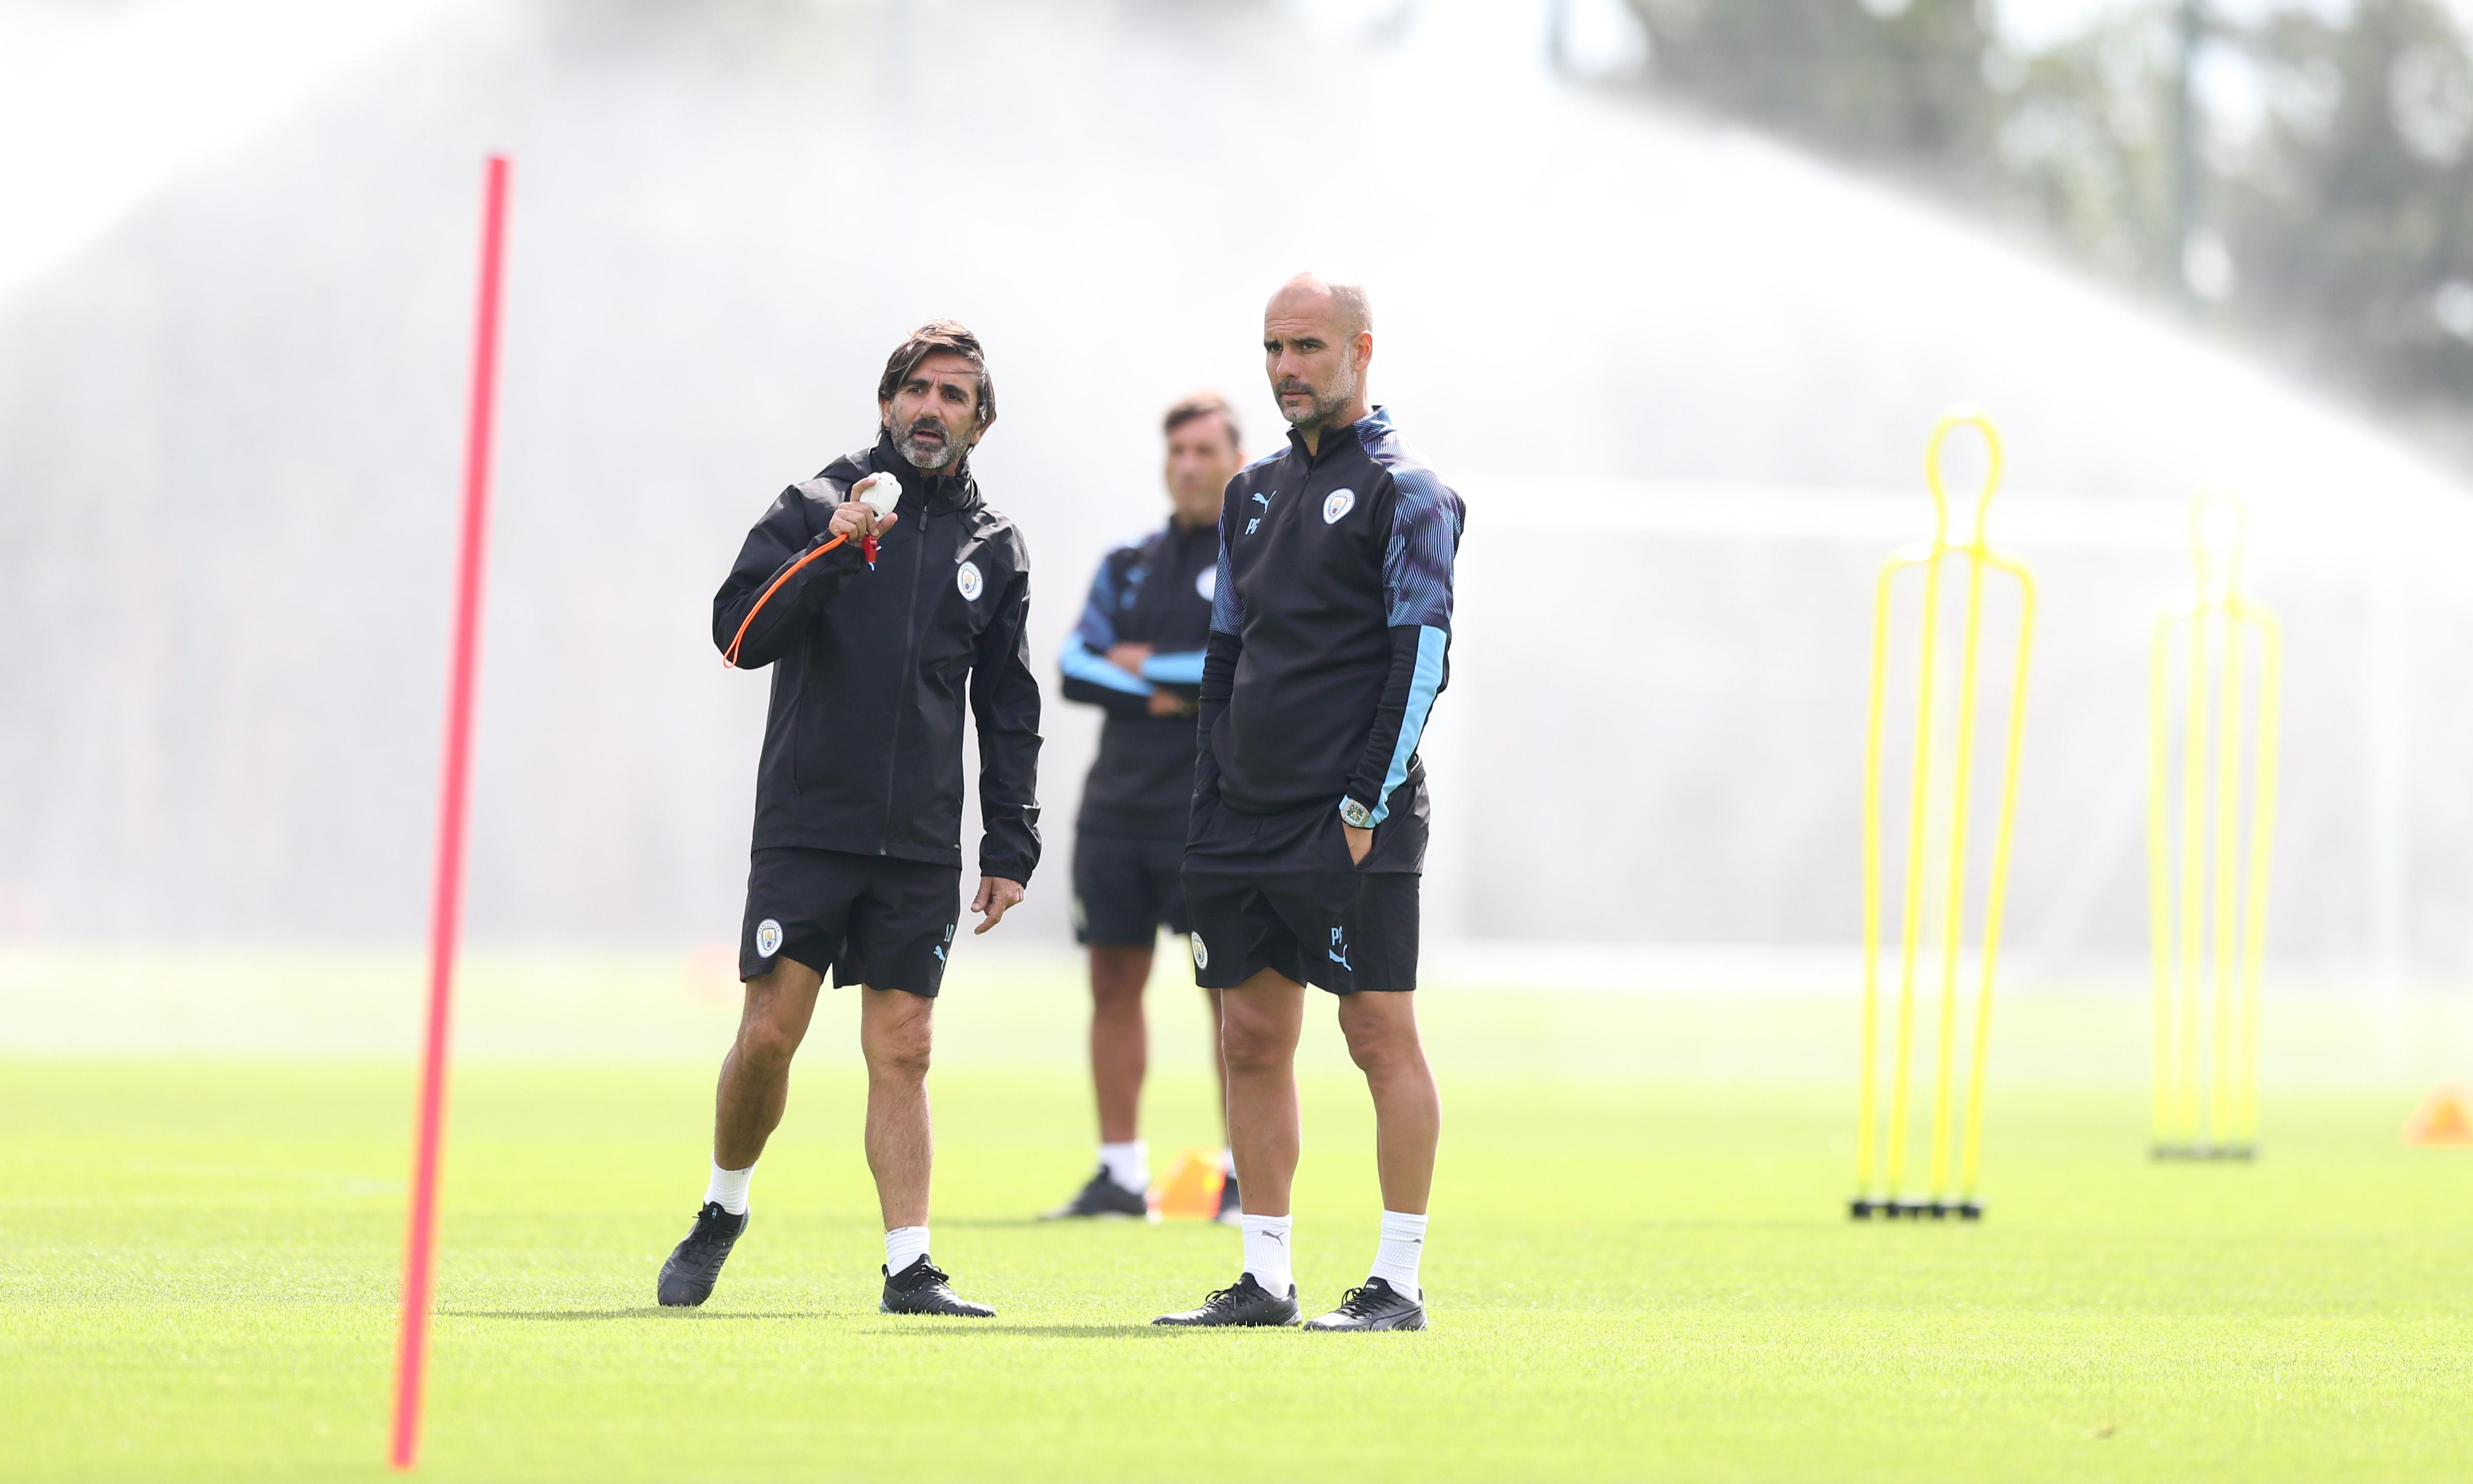 Manchester City's pre-season tour finally has lift-off … two days late